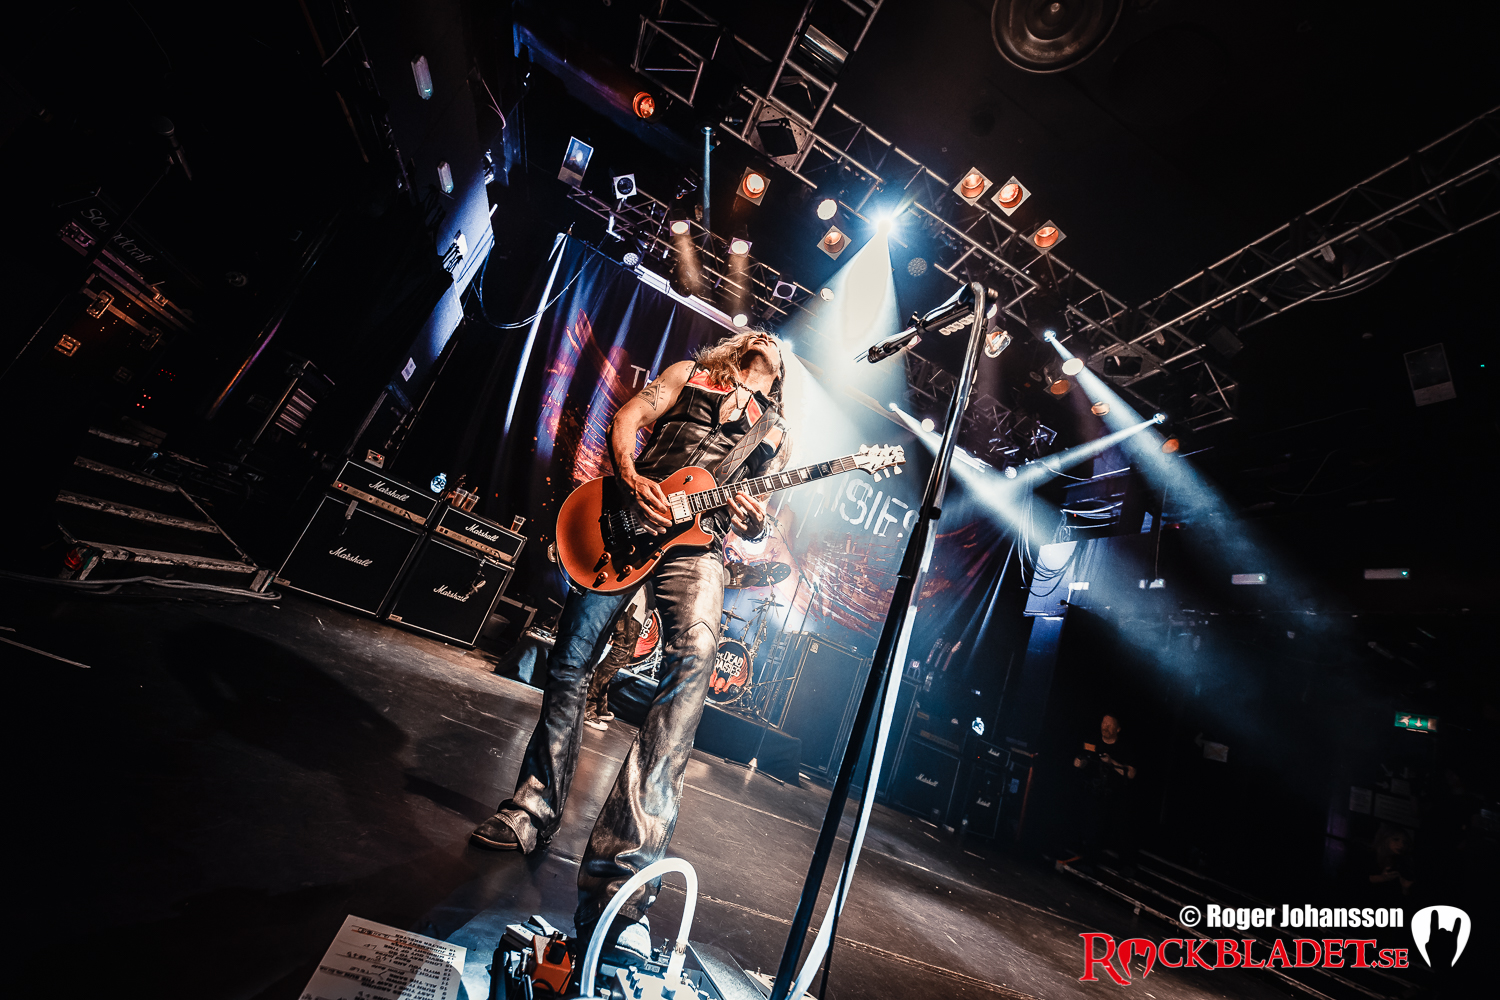 180410-thedeaddaisies-RJ-Bild11